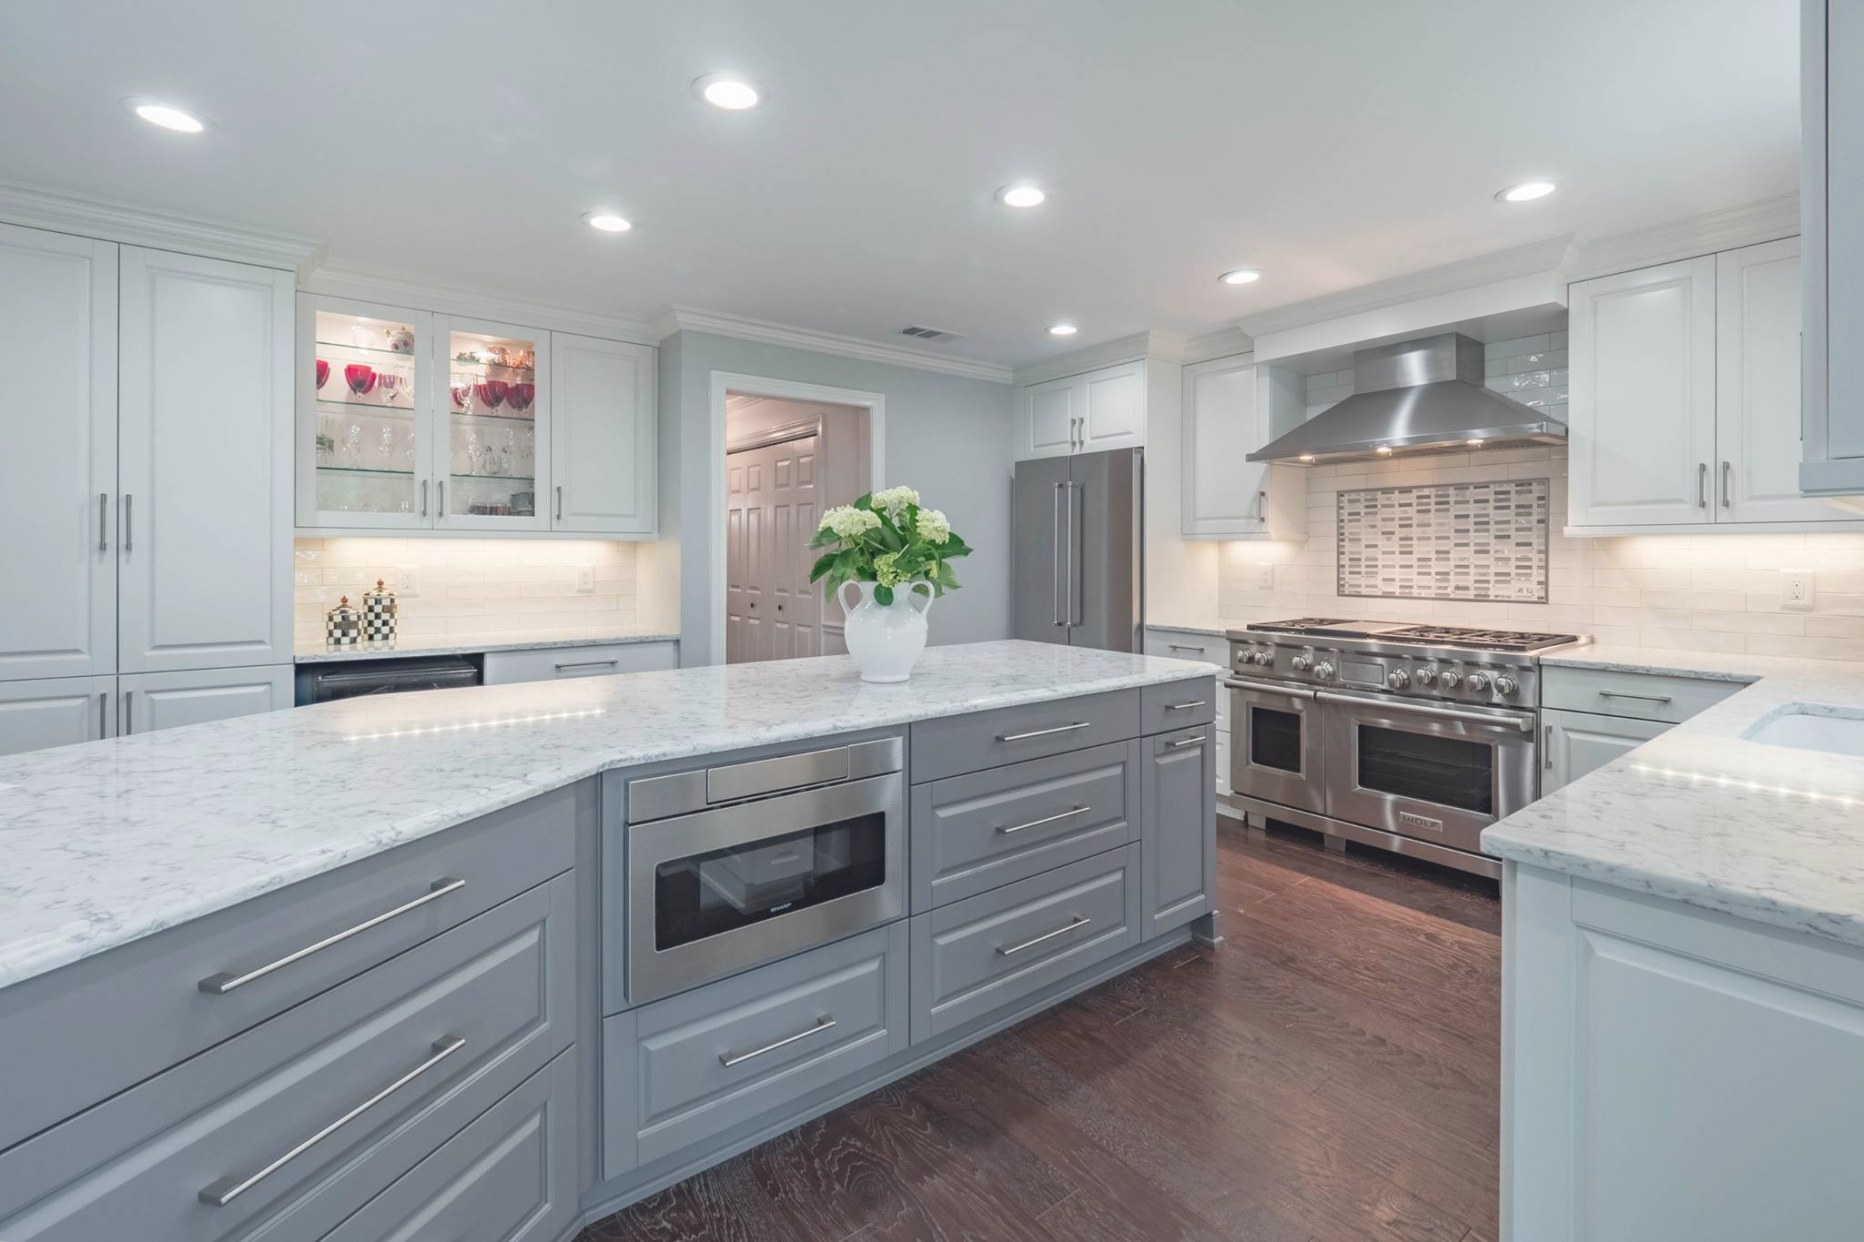 Cheryl Pett Design - Custom Kitchens & Fine Cabinetry inside White And Gray Kitchens